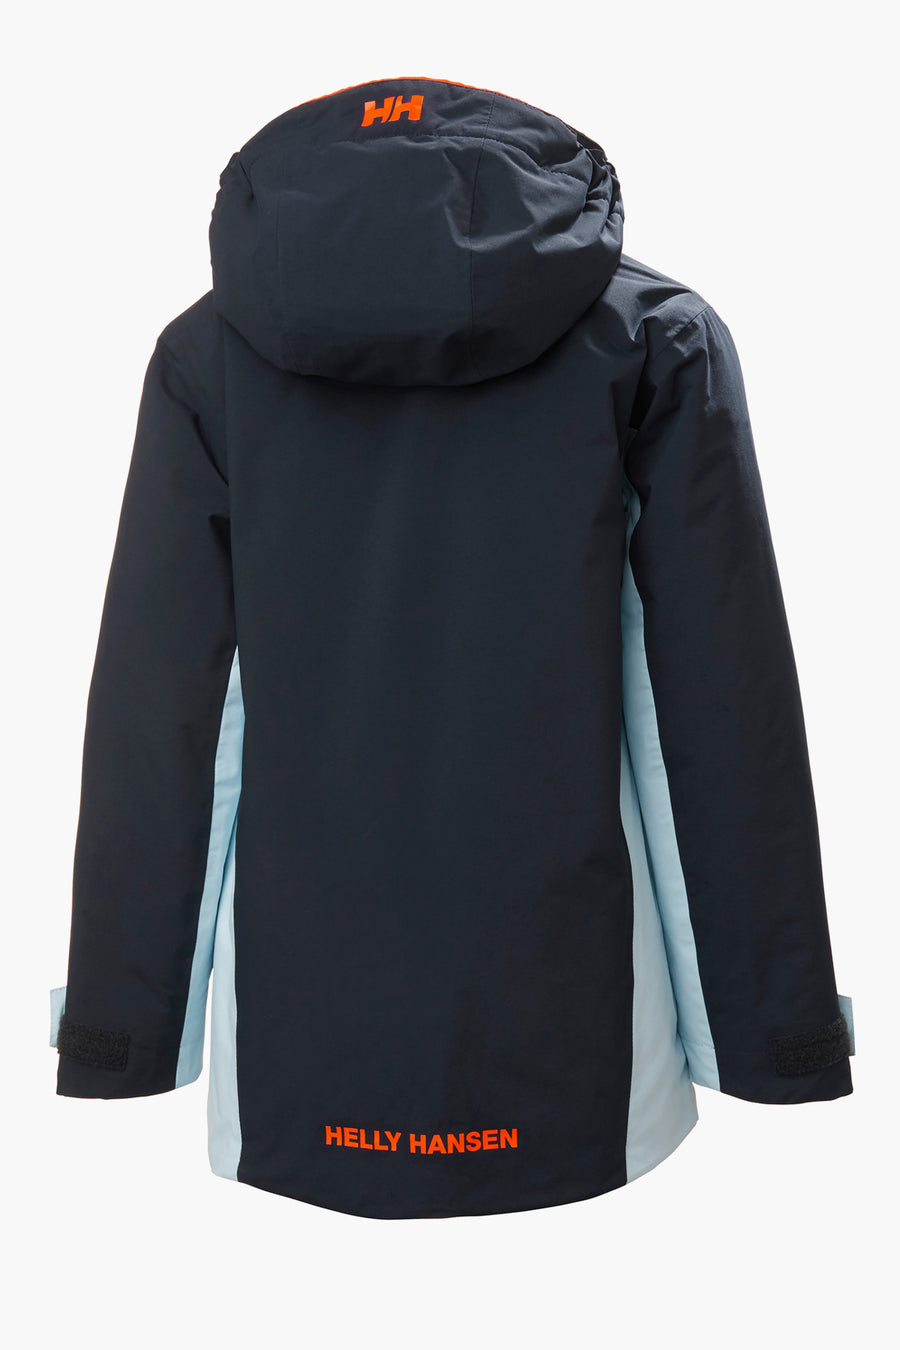 Helly Hansen Kids Jacket Level